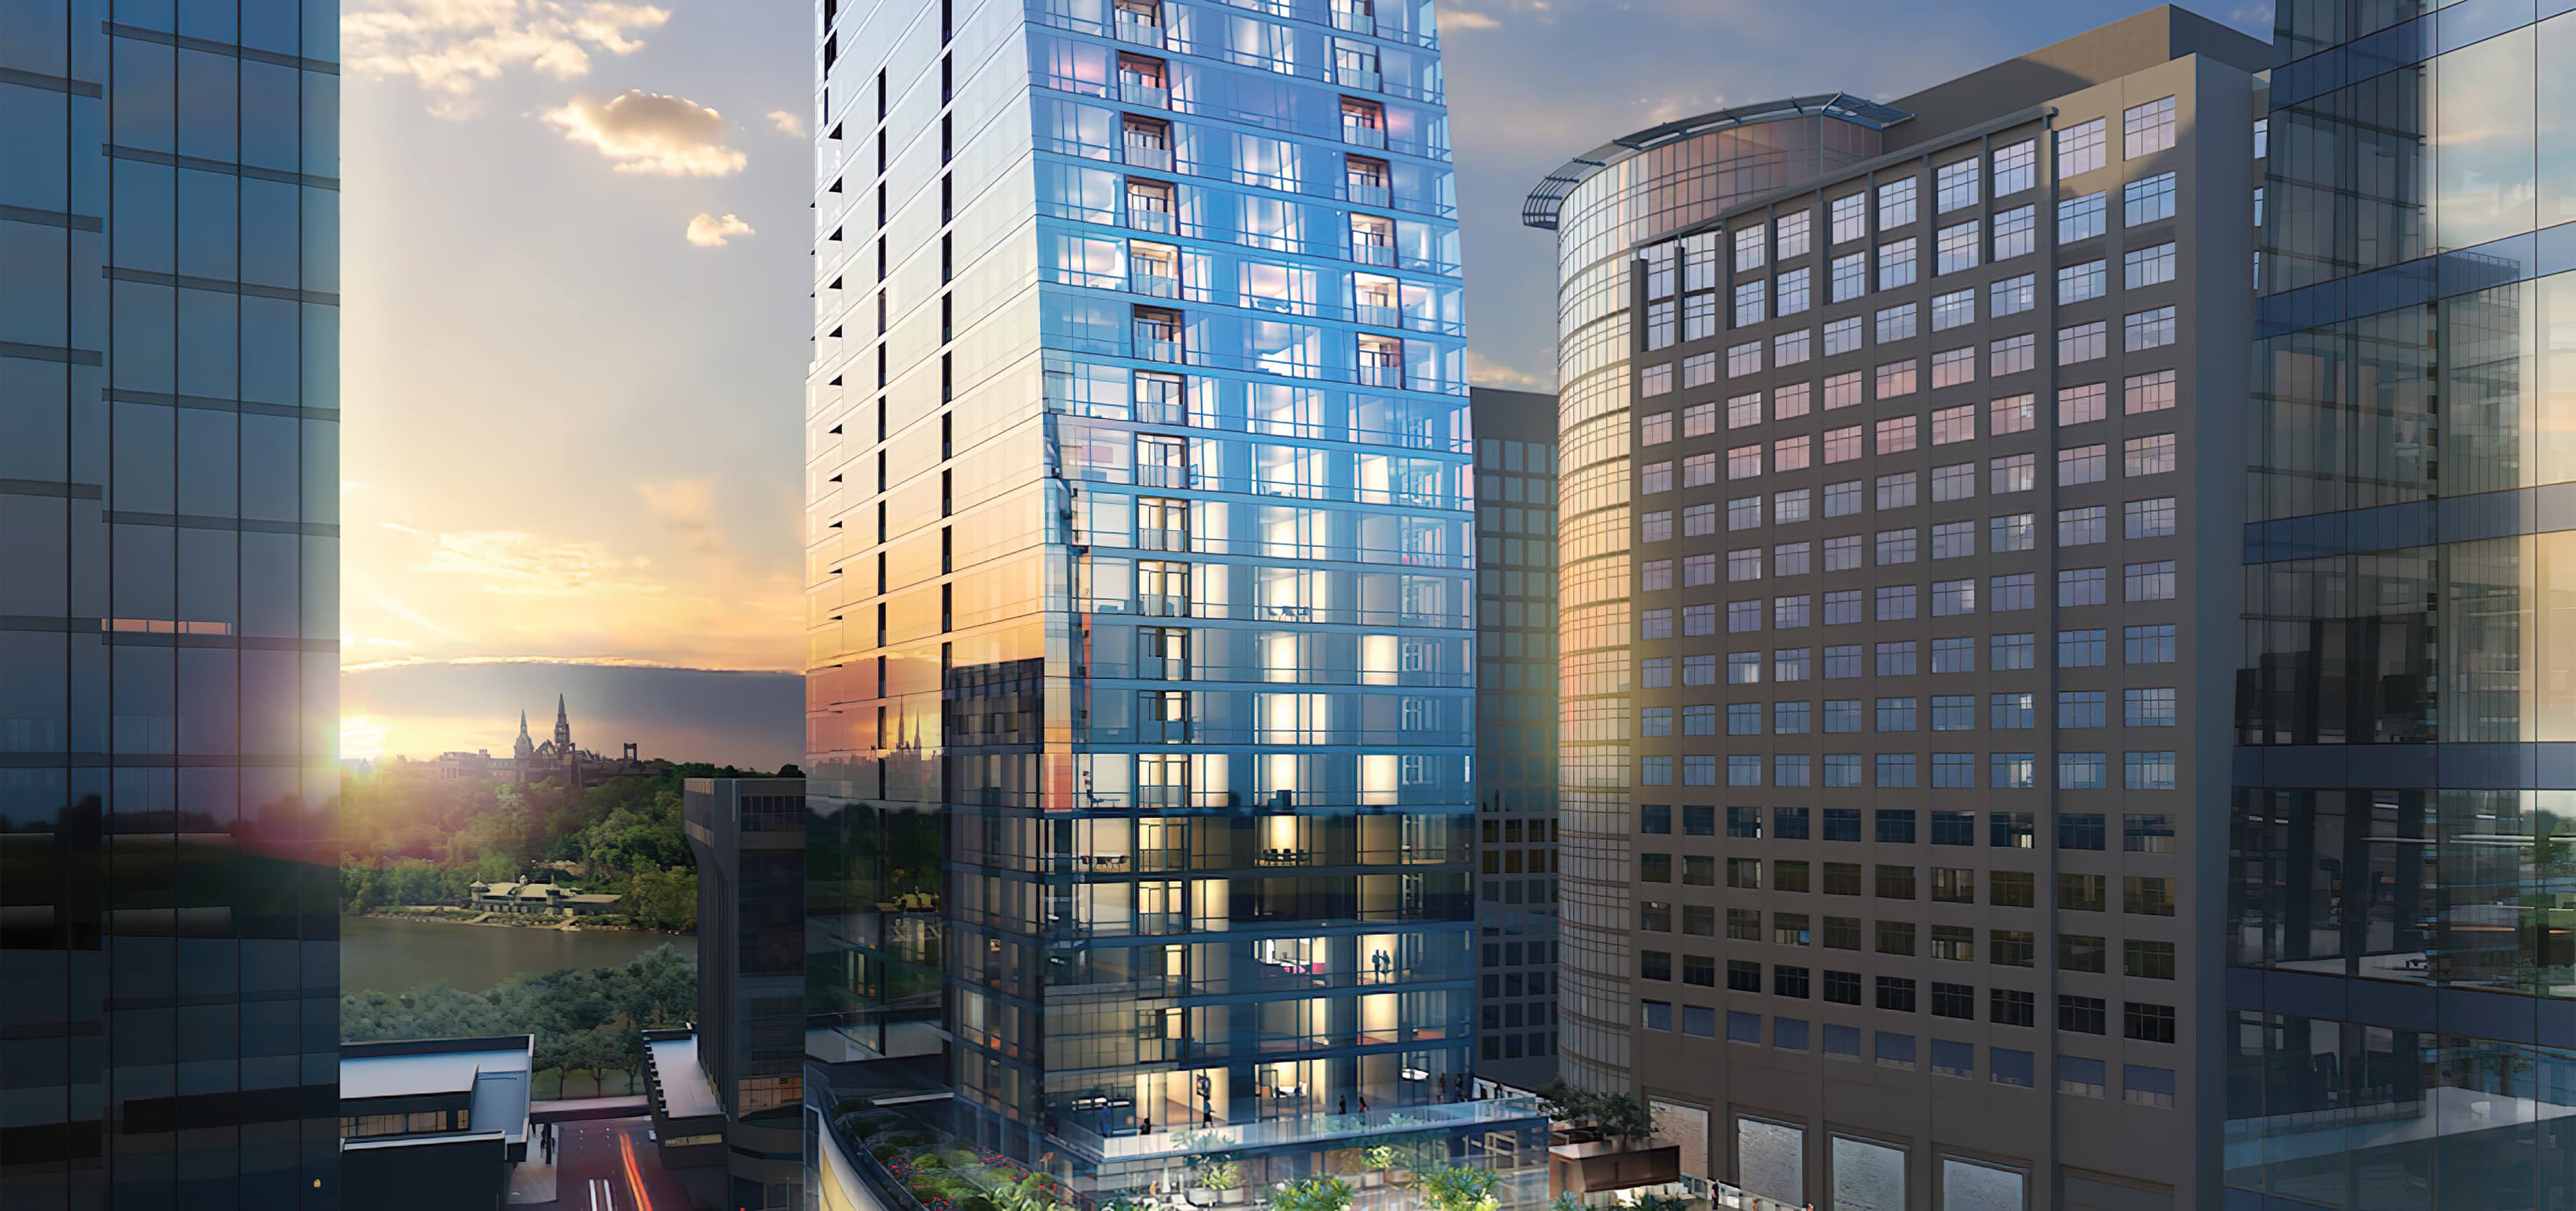 Central Place, a mixed-use project in Rosslyn, Virginia. RSM Design prepared a wayfinding and signage system.